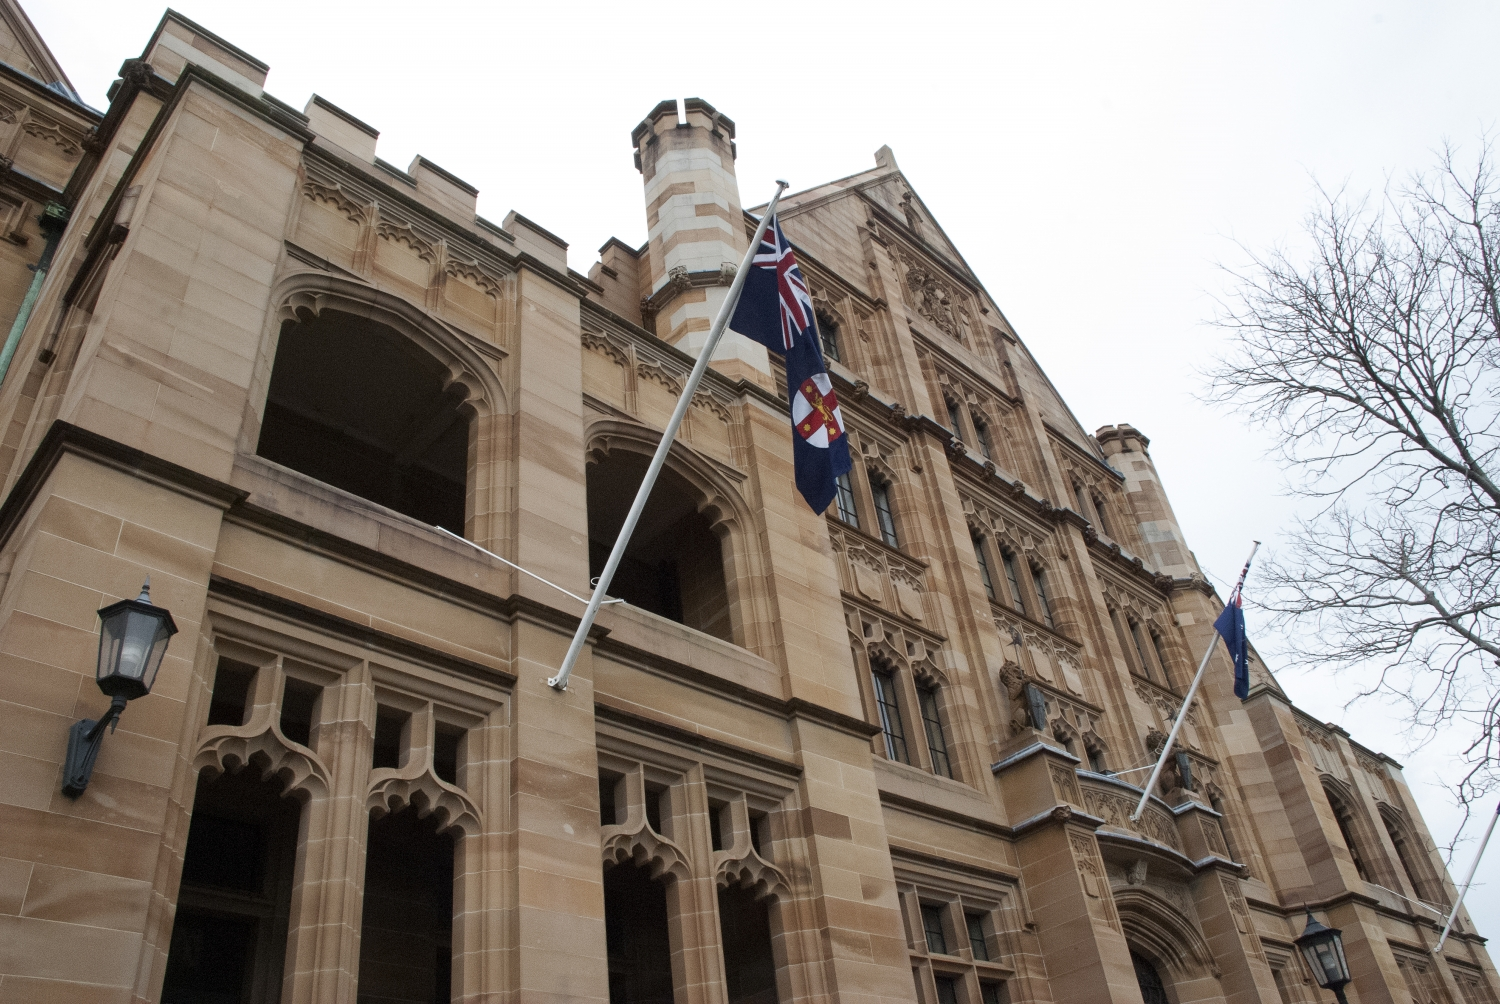 Exterior photograph of Registrar General's Building, Queens Square Sydney taken from the side.